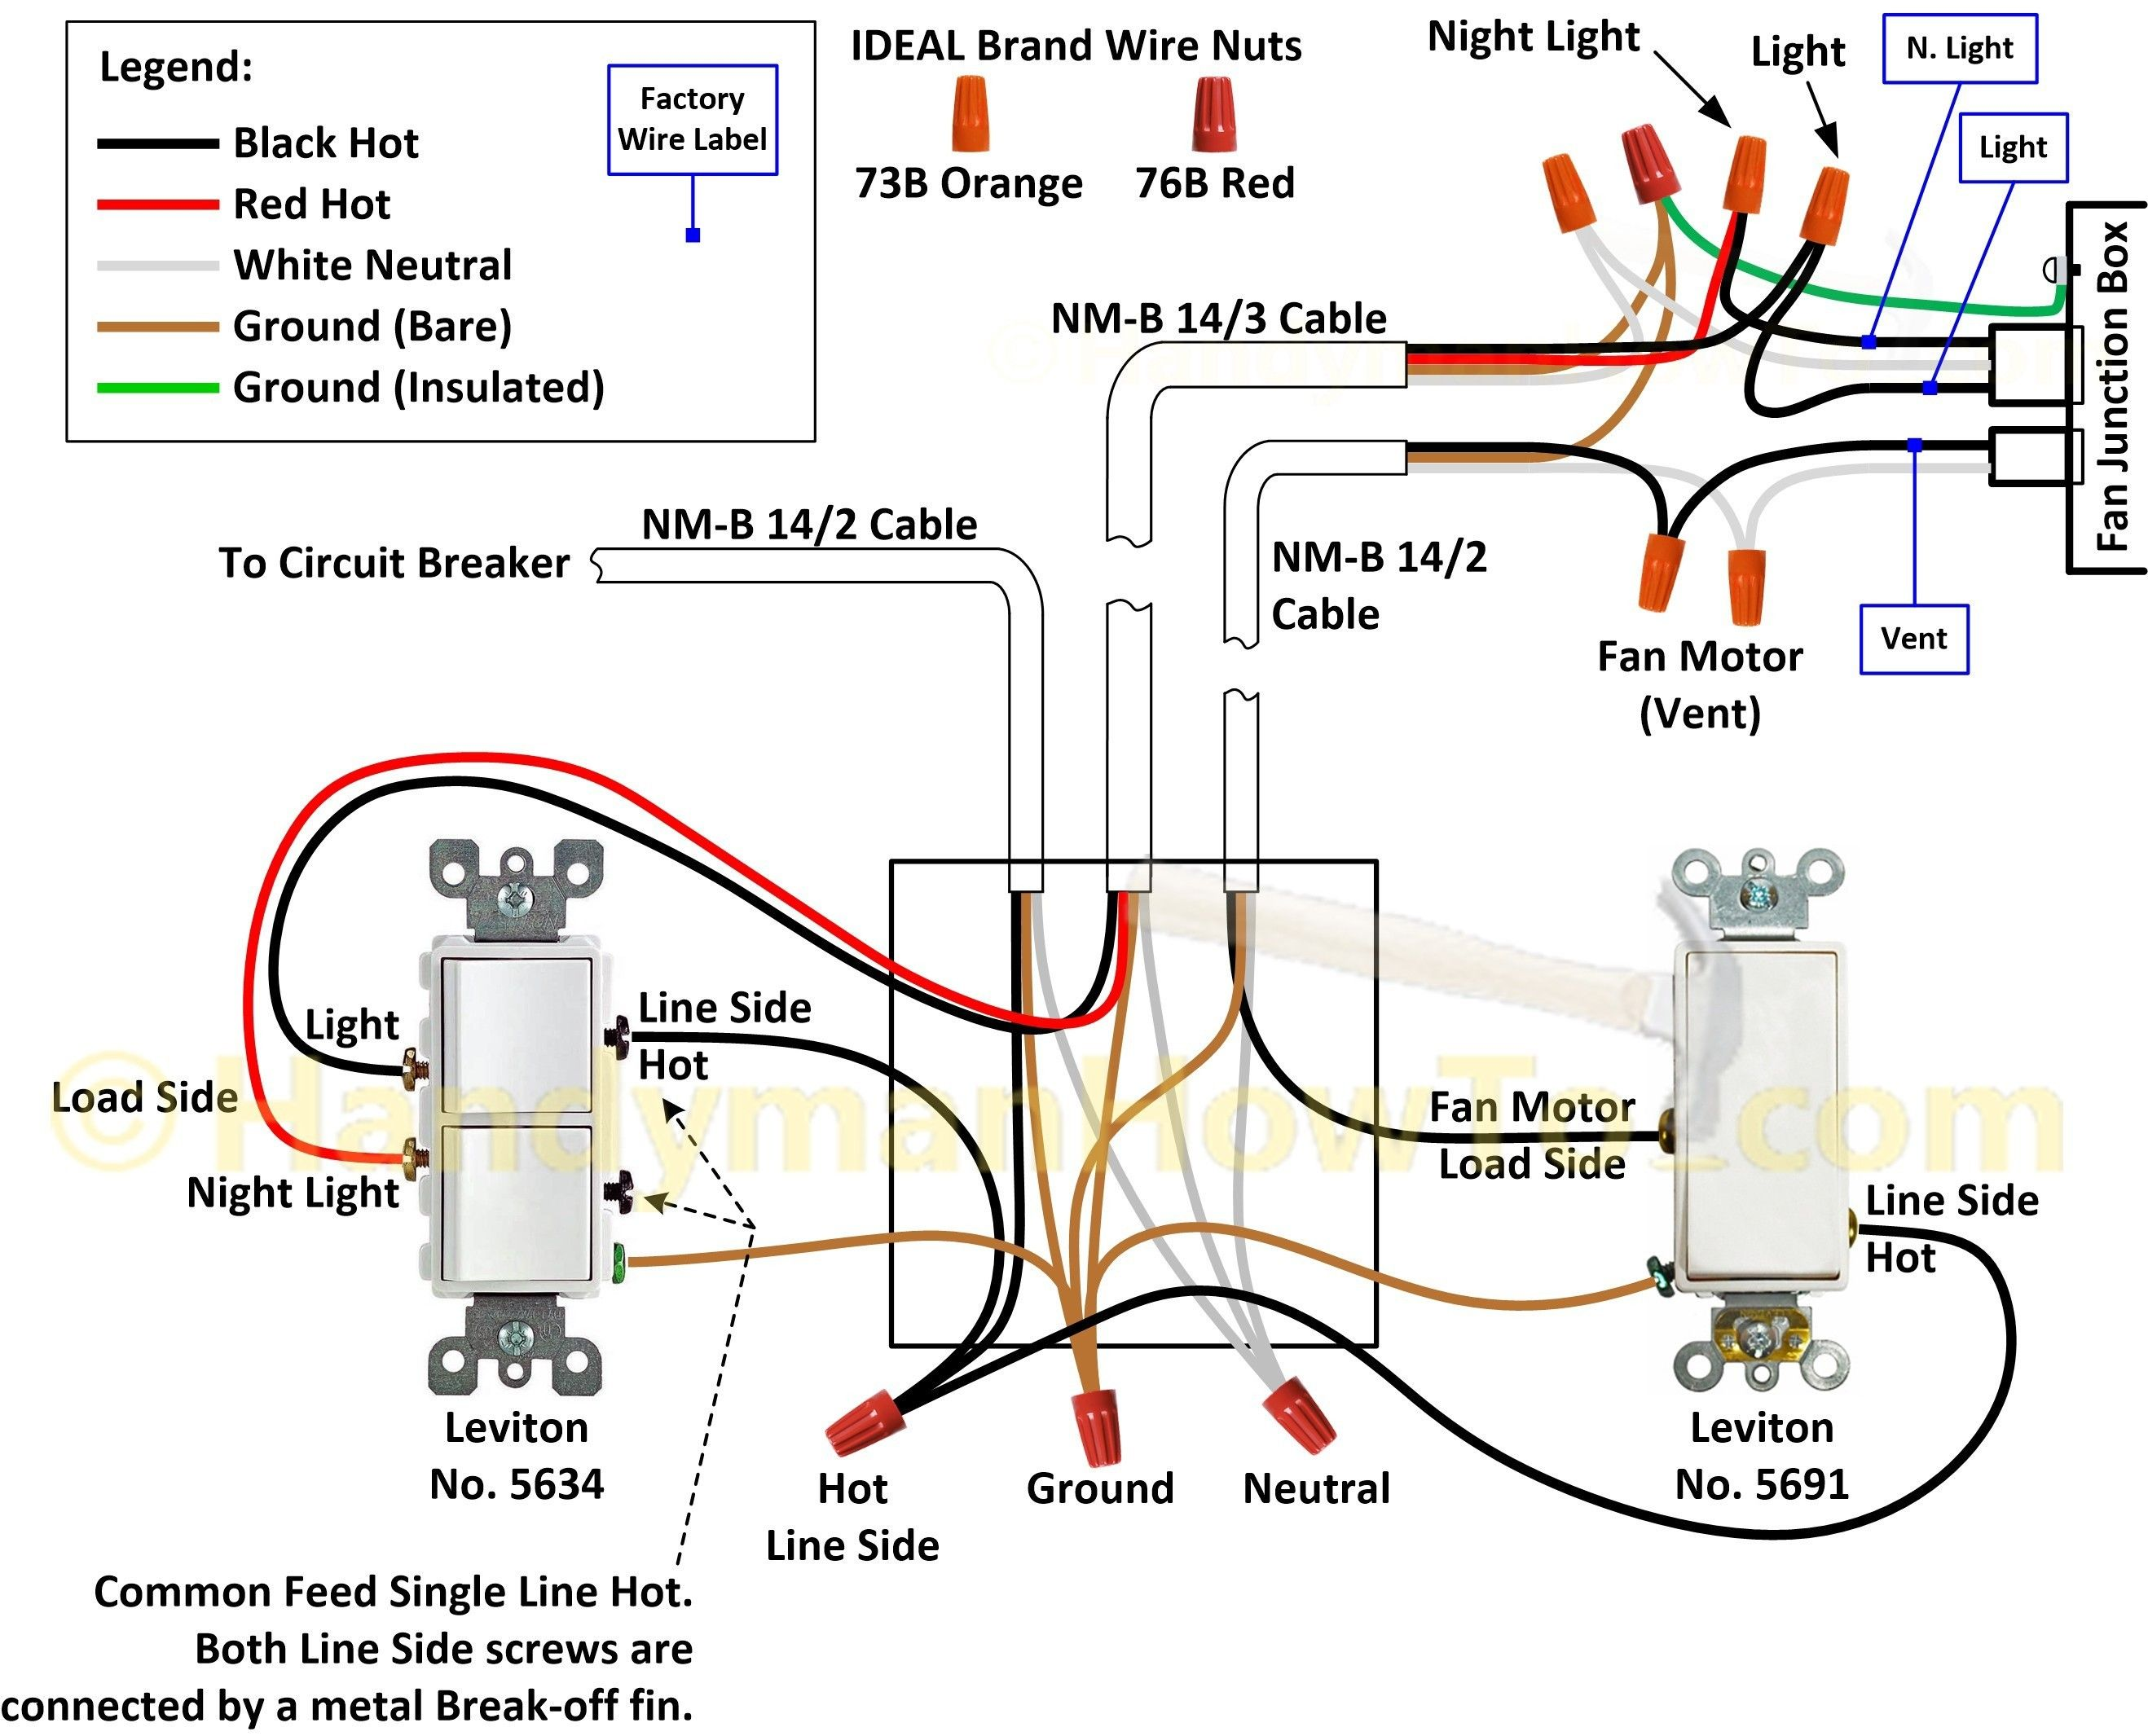 Unique Wiring Diagram Outlet To Switch To Light Diagram Diagramsample Diagramtemplate Wir Fan Light Switch Bathroom Fan Light